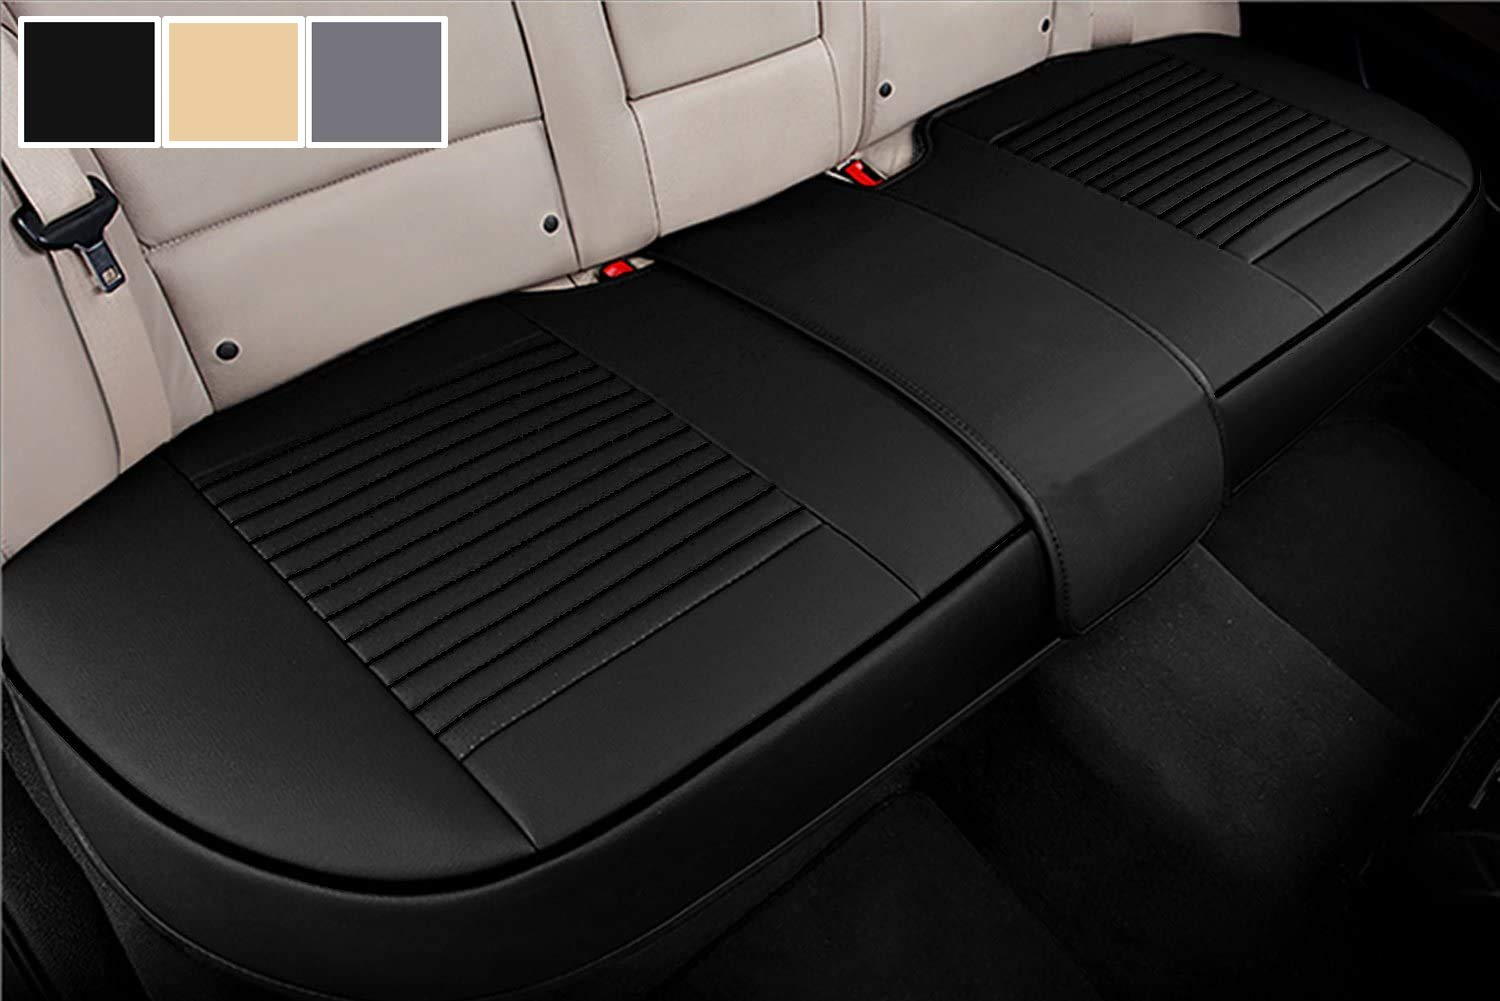 Amazon Com Big Ant Back Seat Covers Separated Seat Cover Pu Leather Back Car Seat Covers Breathable Back Cover Fit For Most Car Suv Vehicle Supplies Black Flexible For Different Seat Size Automotive